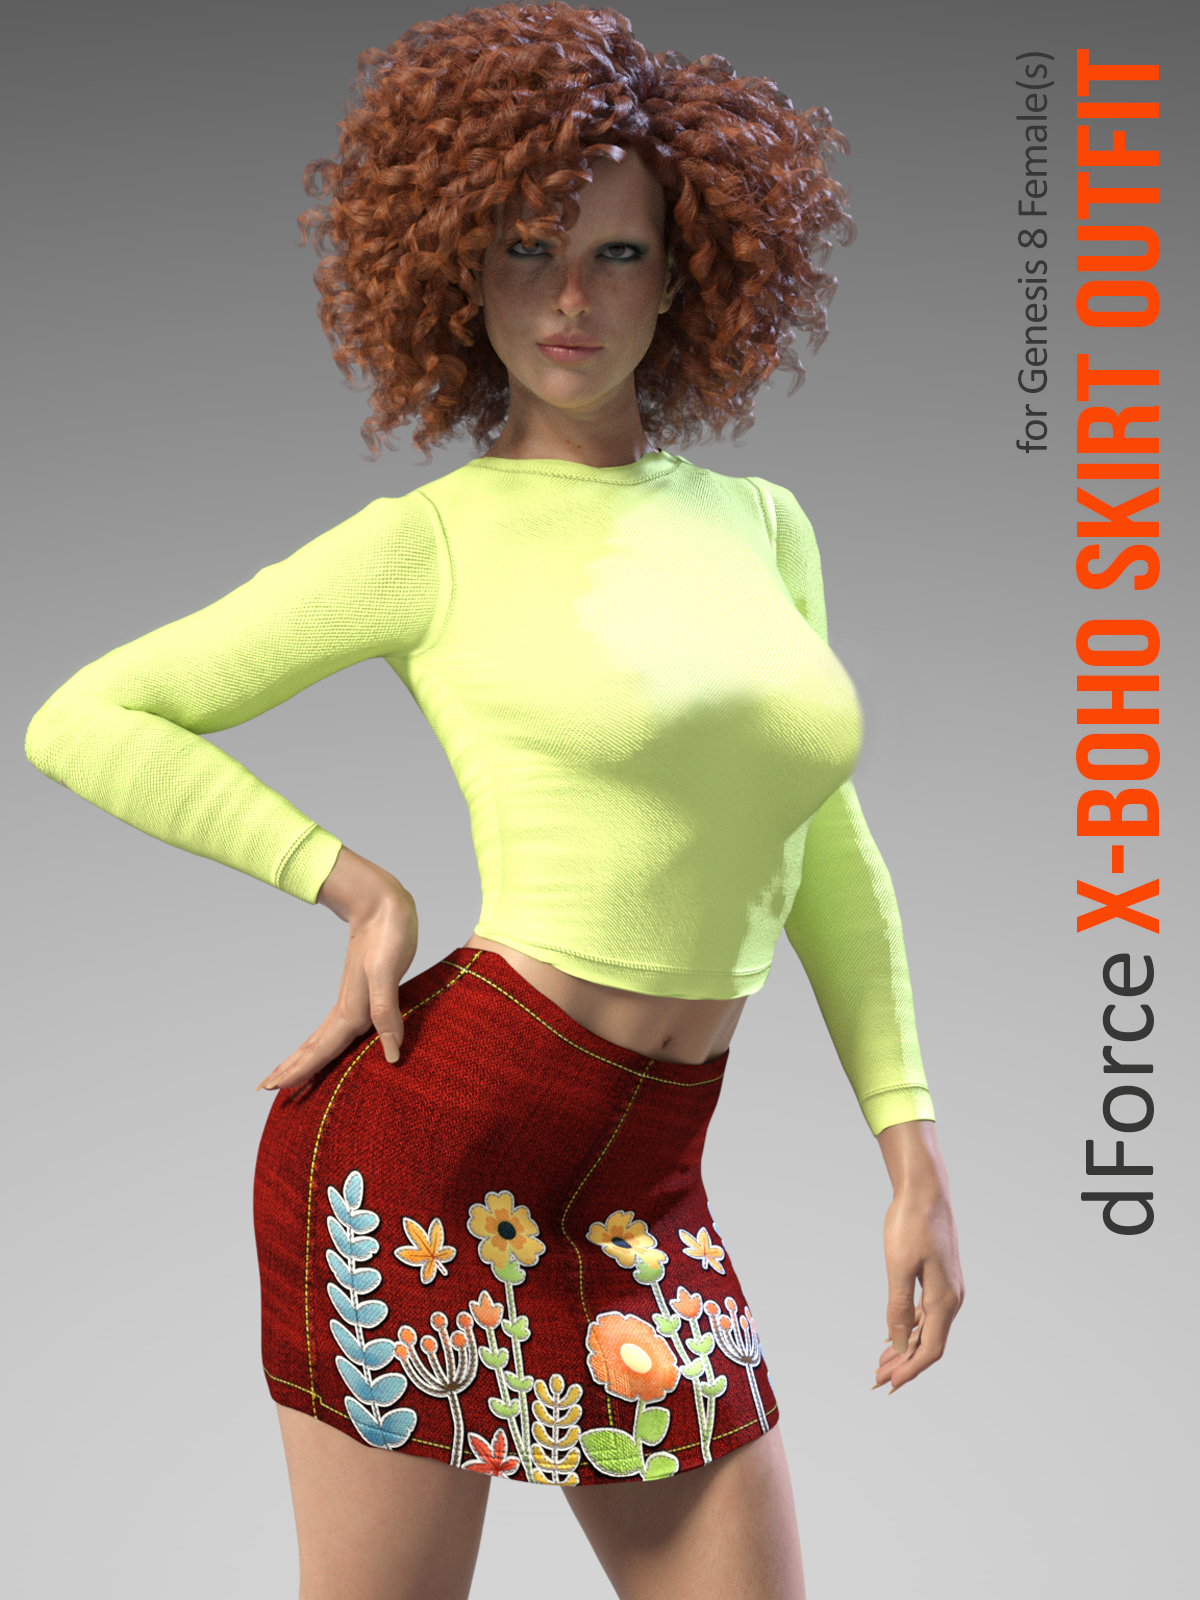 X-Fashion Boho Skirt Outfit for Genesis 8 Females